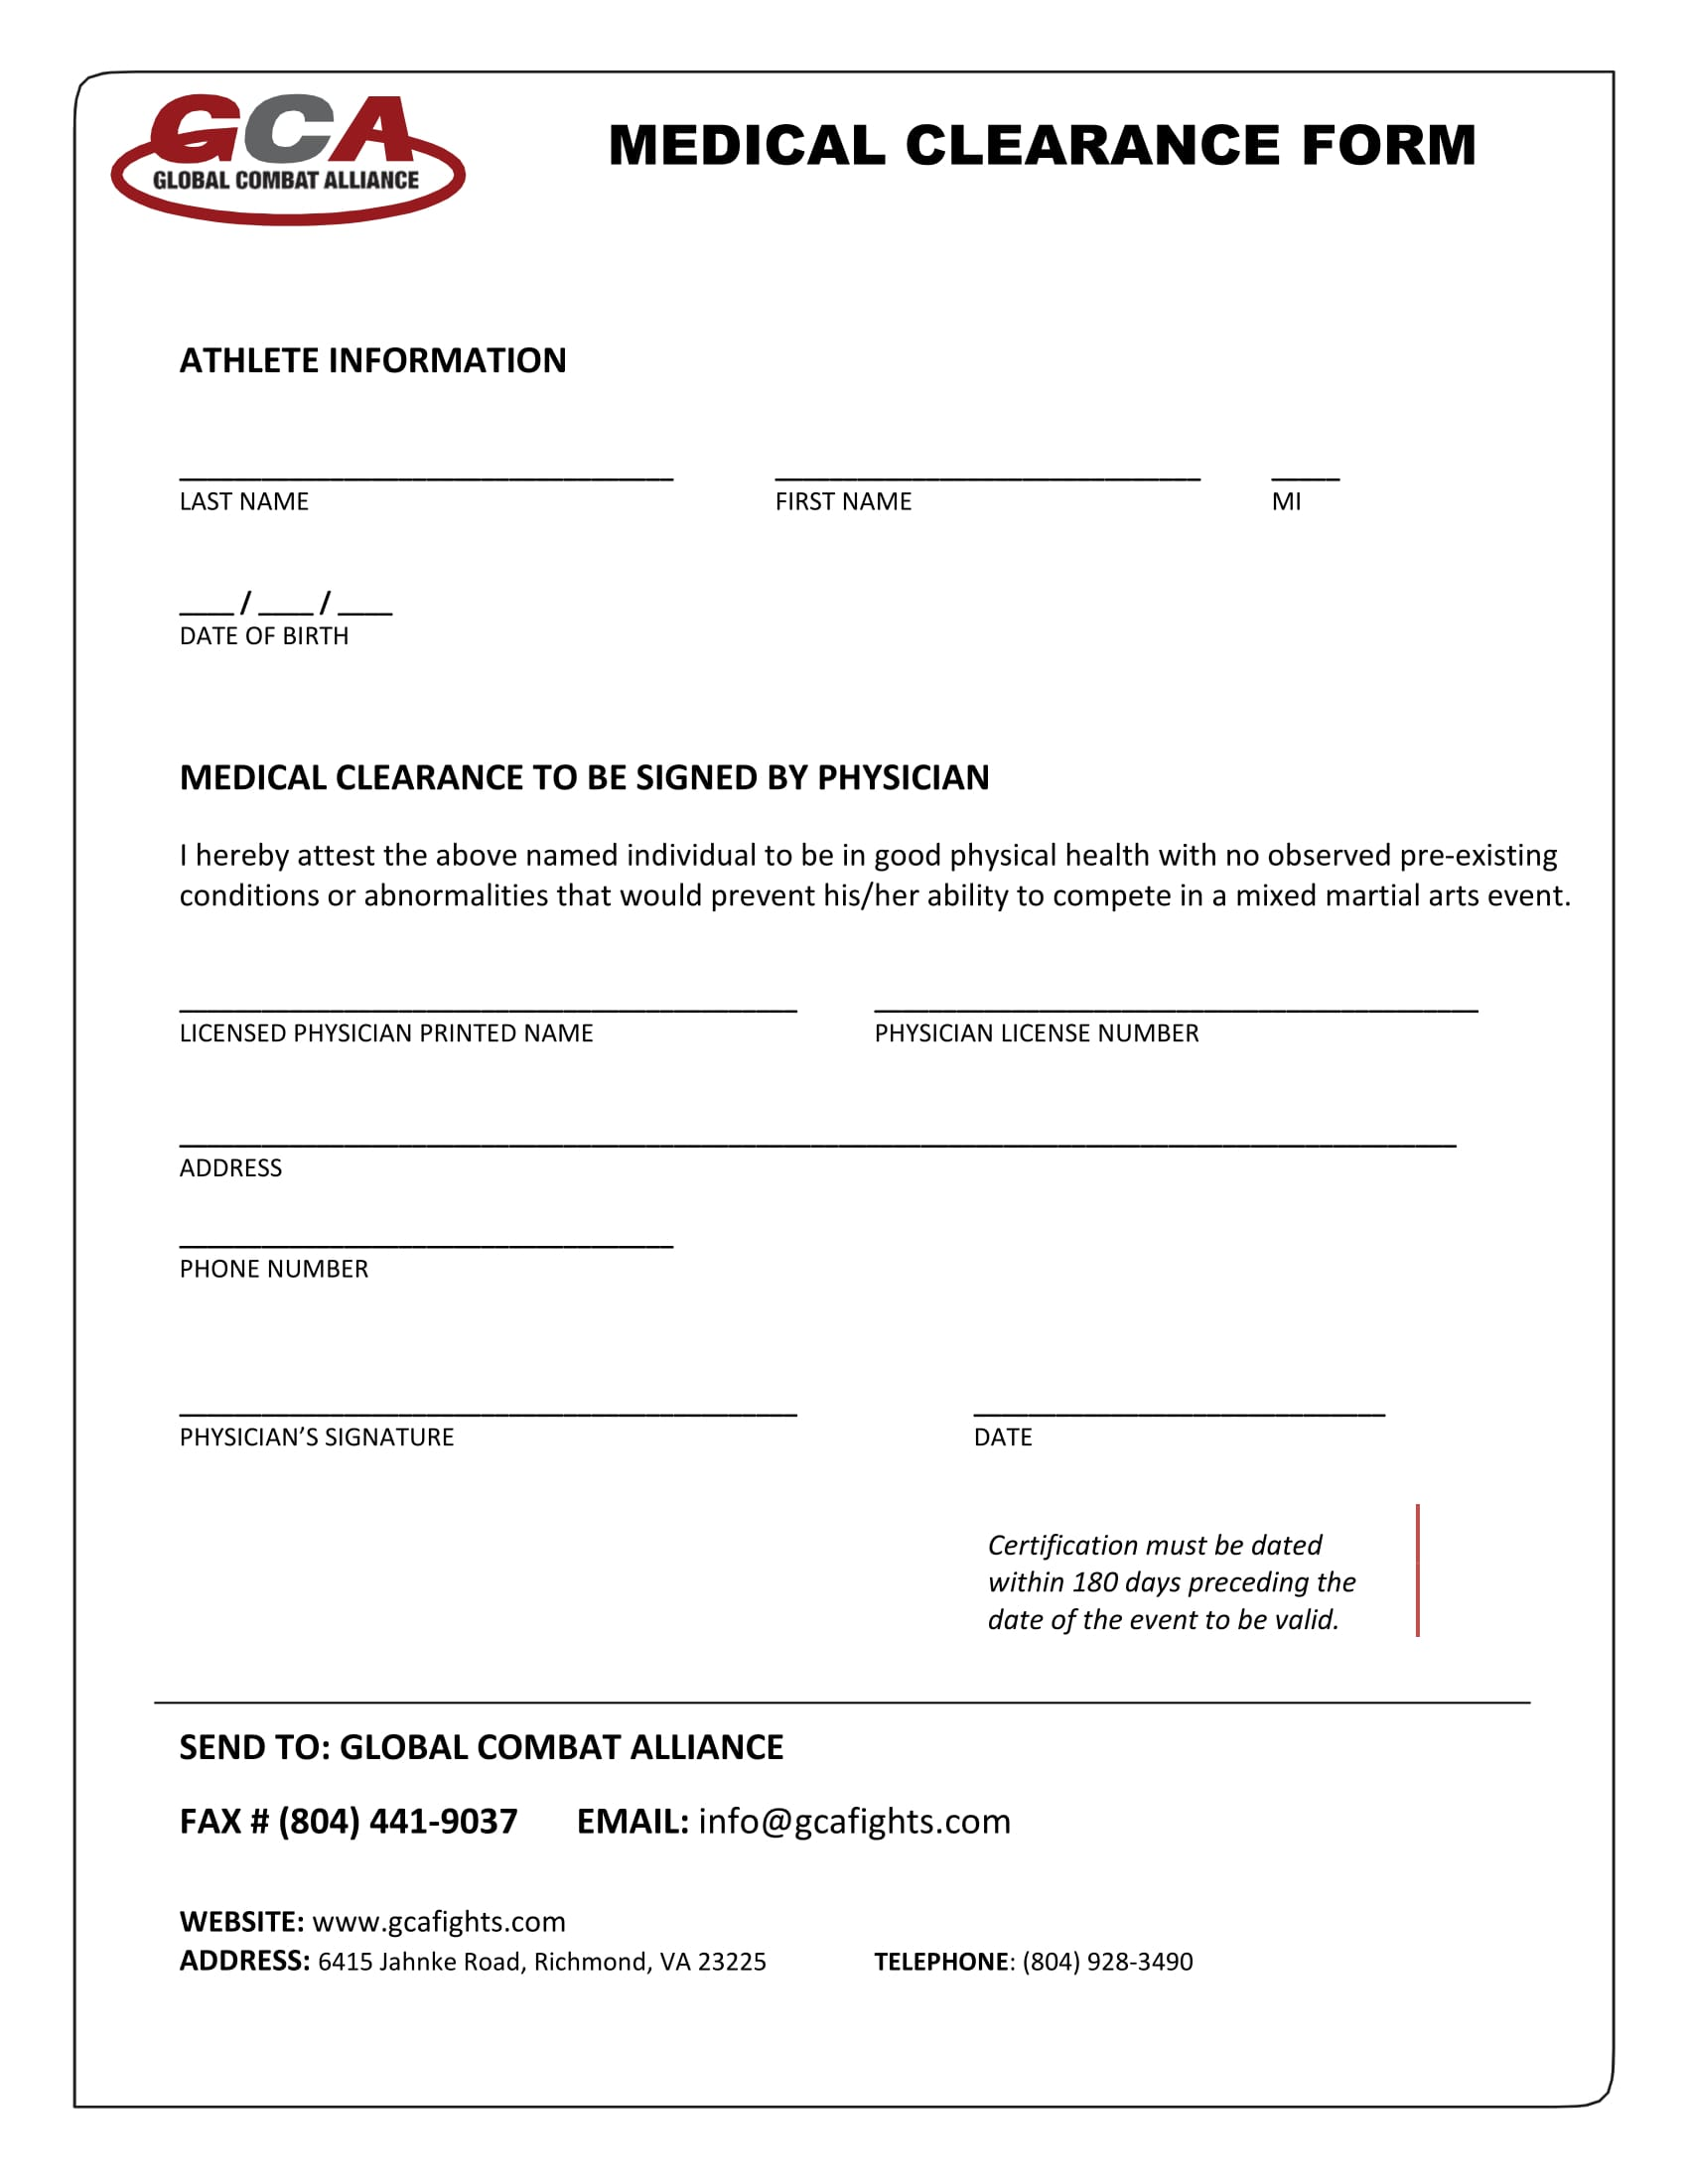 combat athlete medical clearance form 1